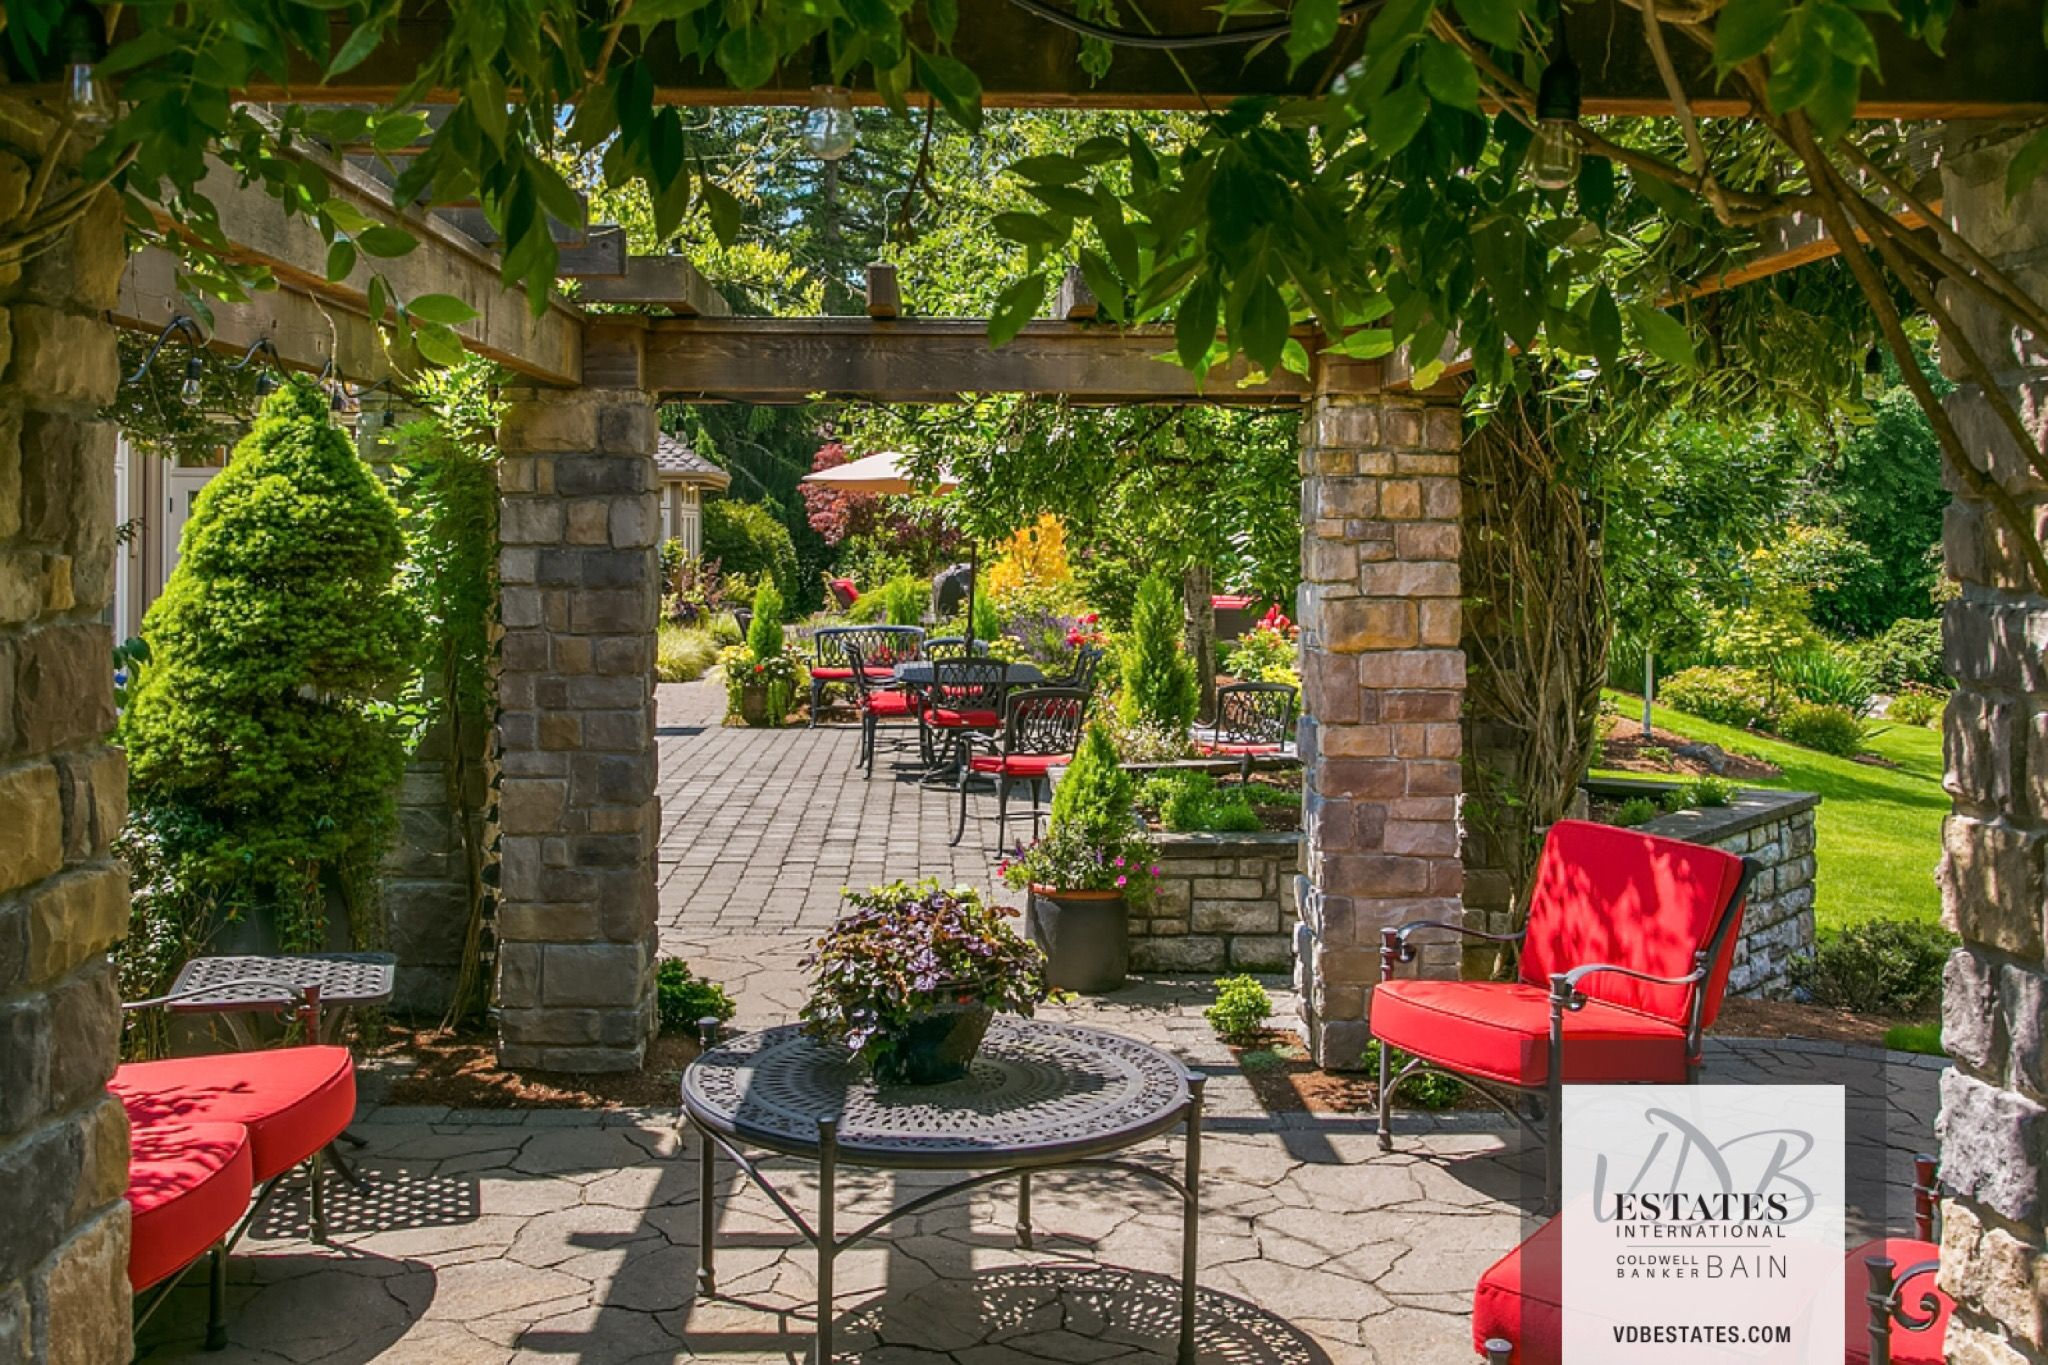 Explore Paradise, Patio, And More!